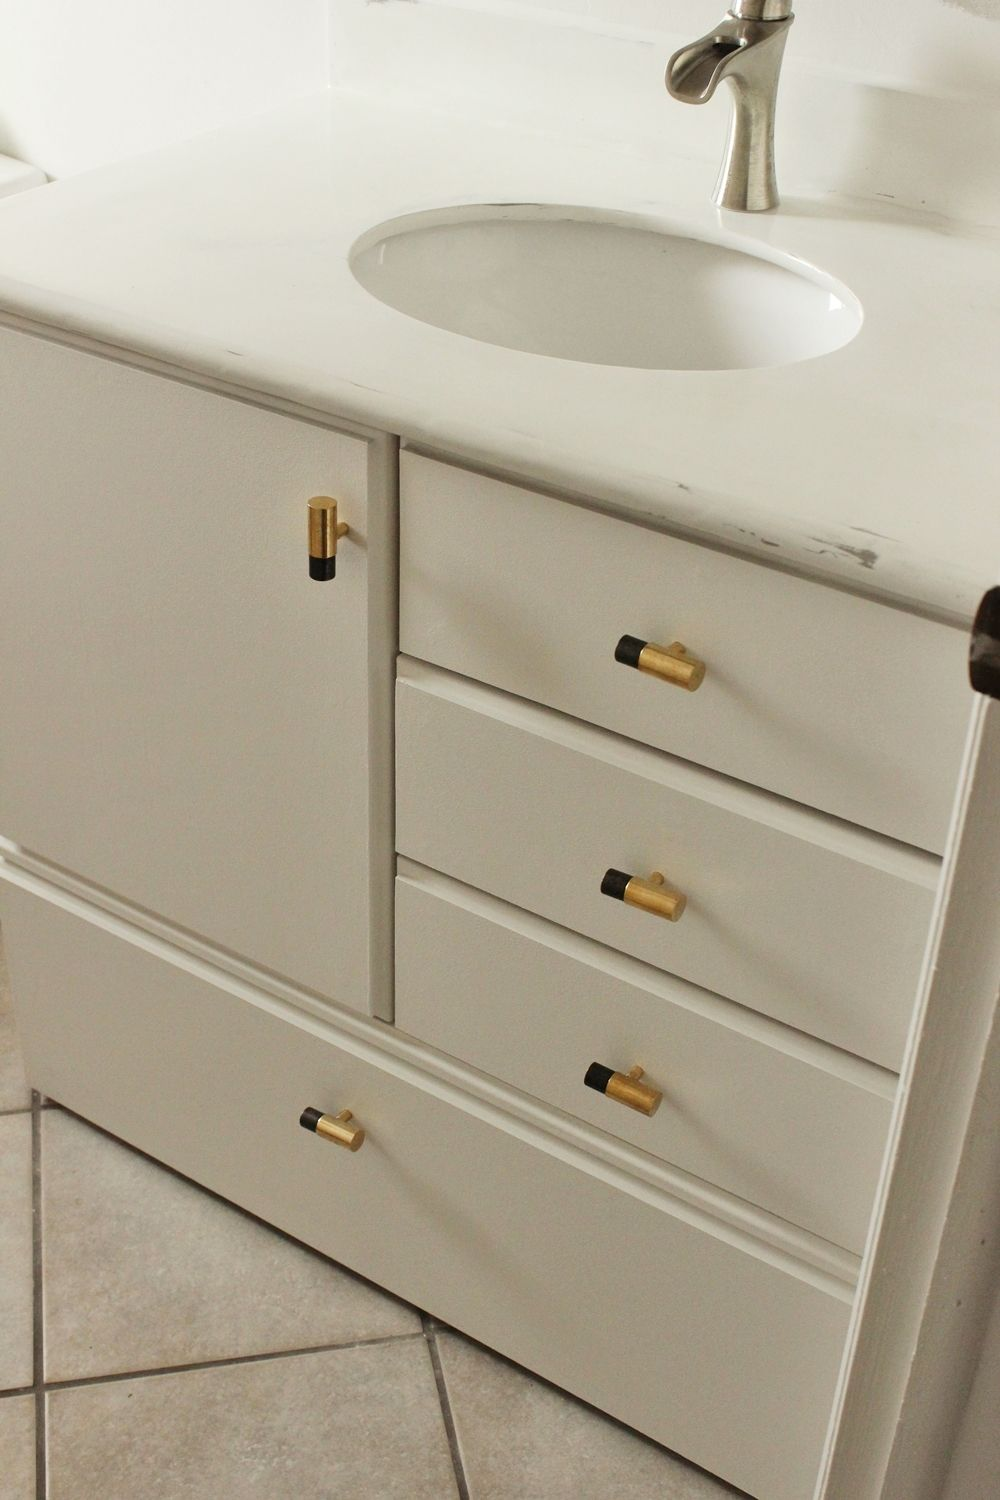 DIY Upgrade Bathroom Vanity With a gold touch